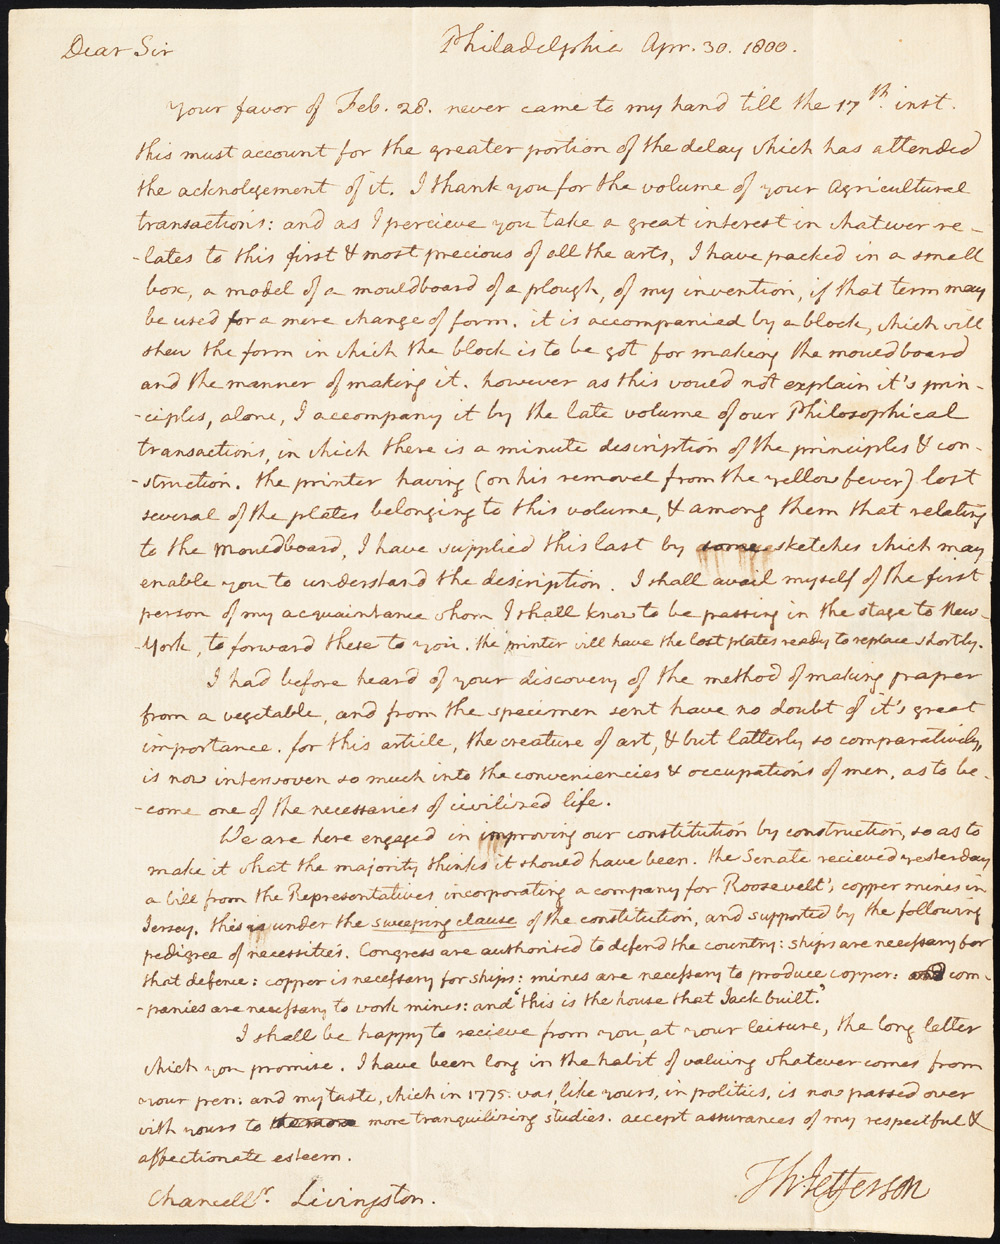 Letter to Chancellor Robert R. Livingston from Thomas Jefferson, April 30, 1800